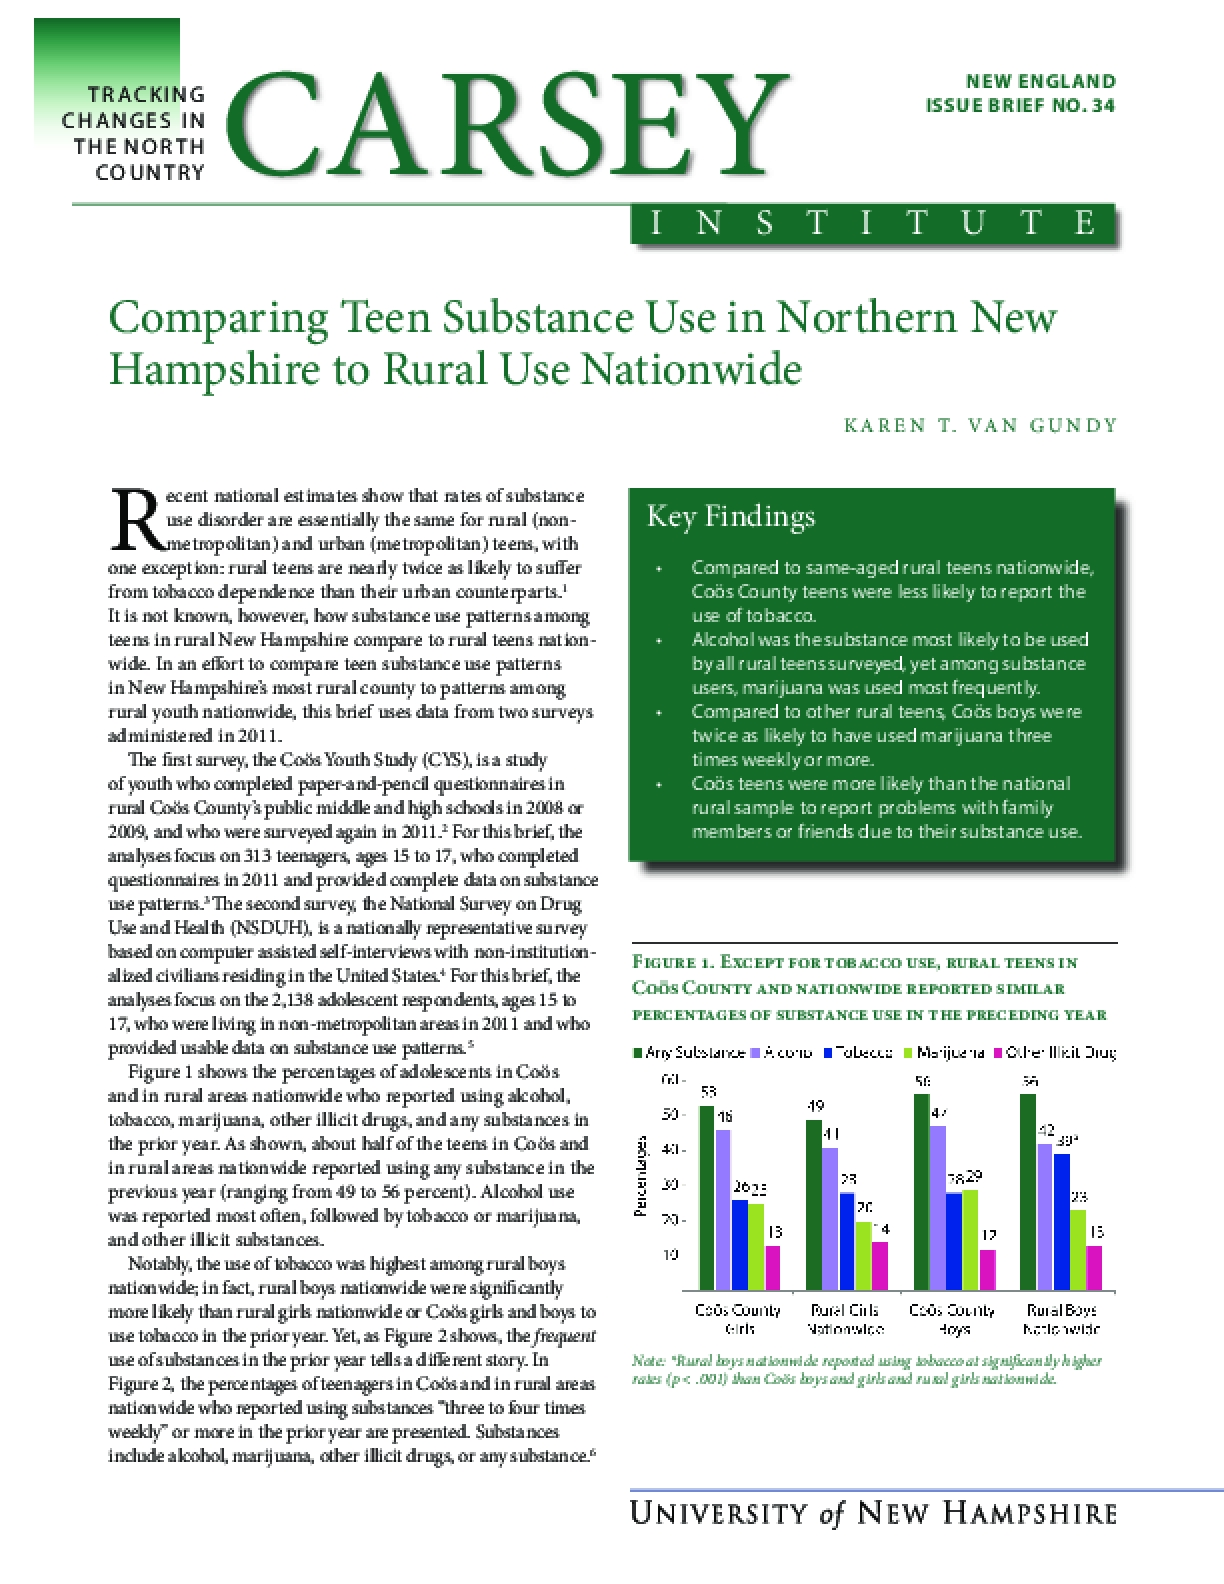 Comparing Teen Substance Use in Northern New Hampshire to Rural Use Nationwide